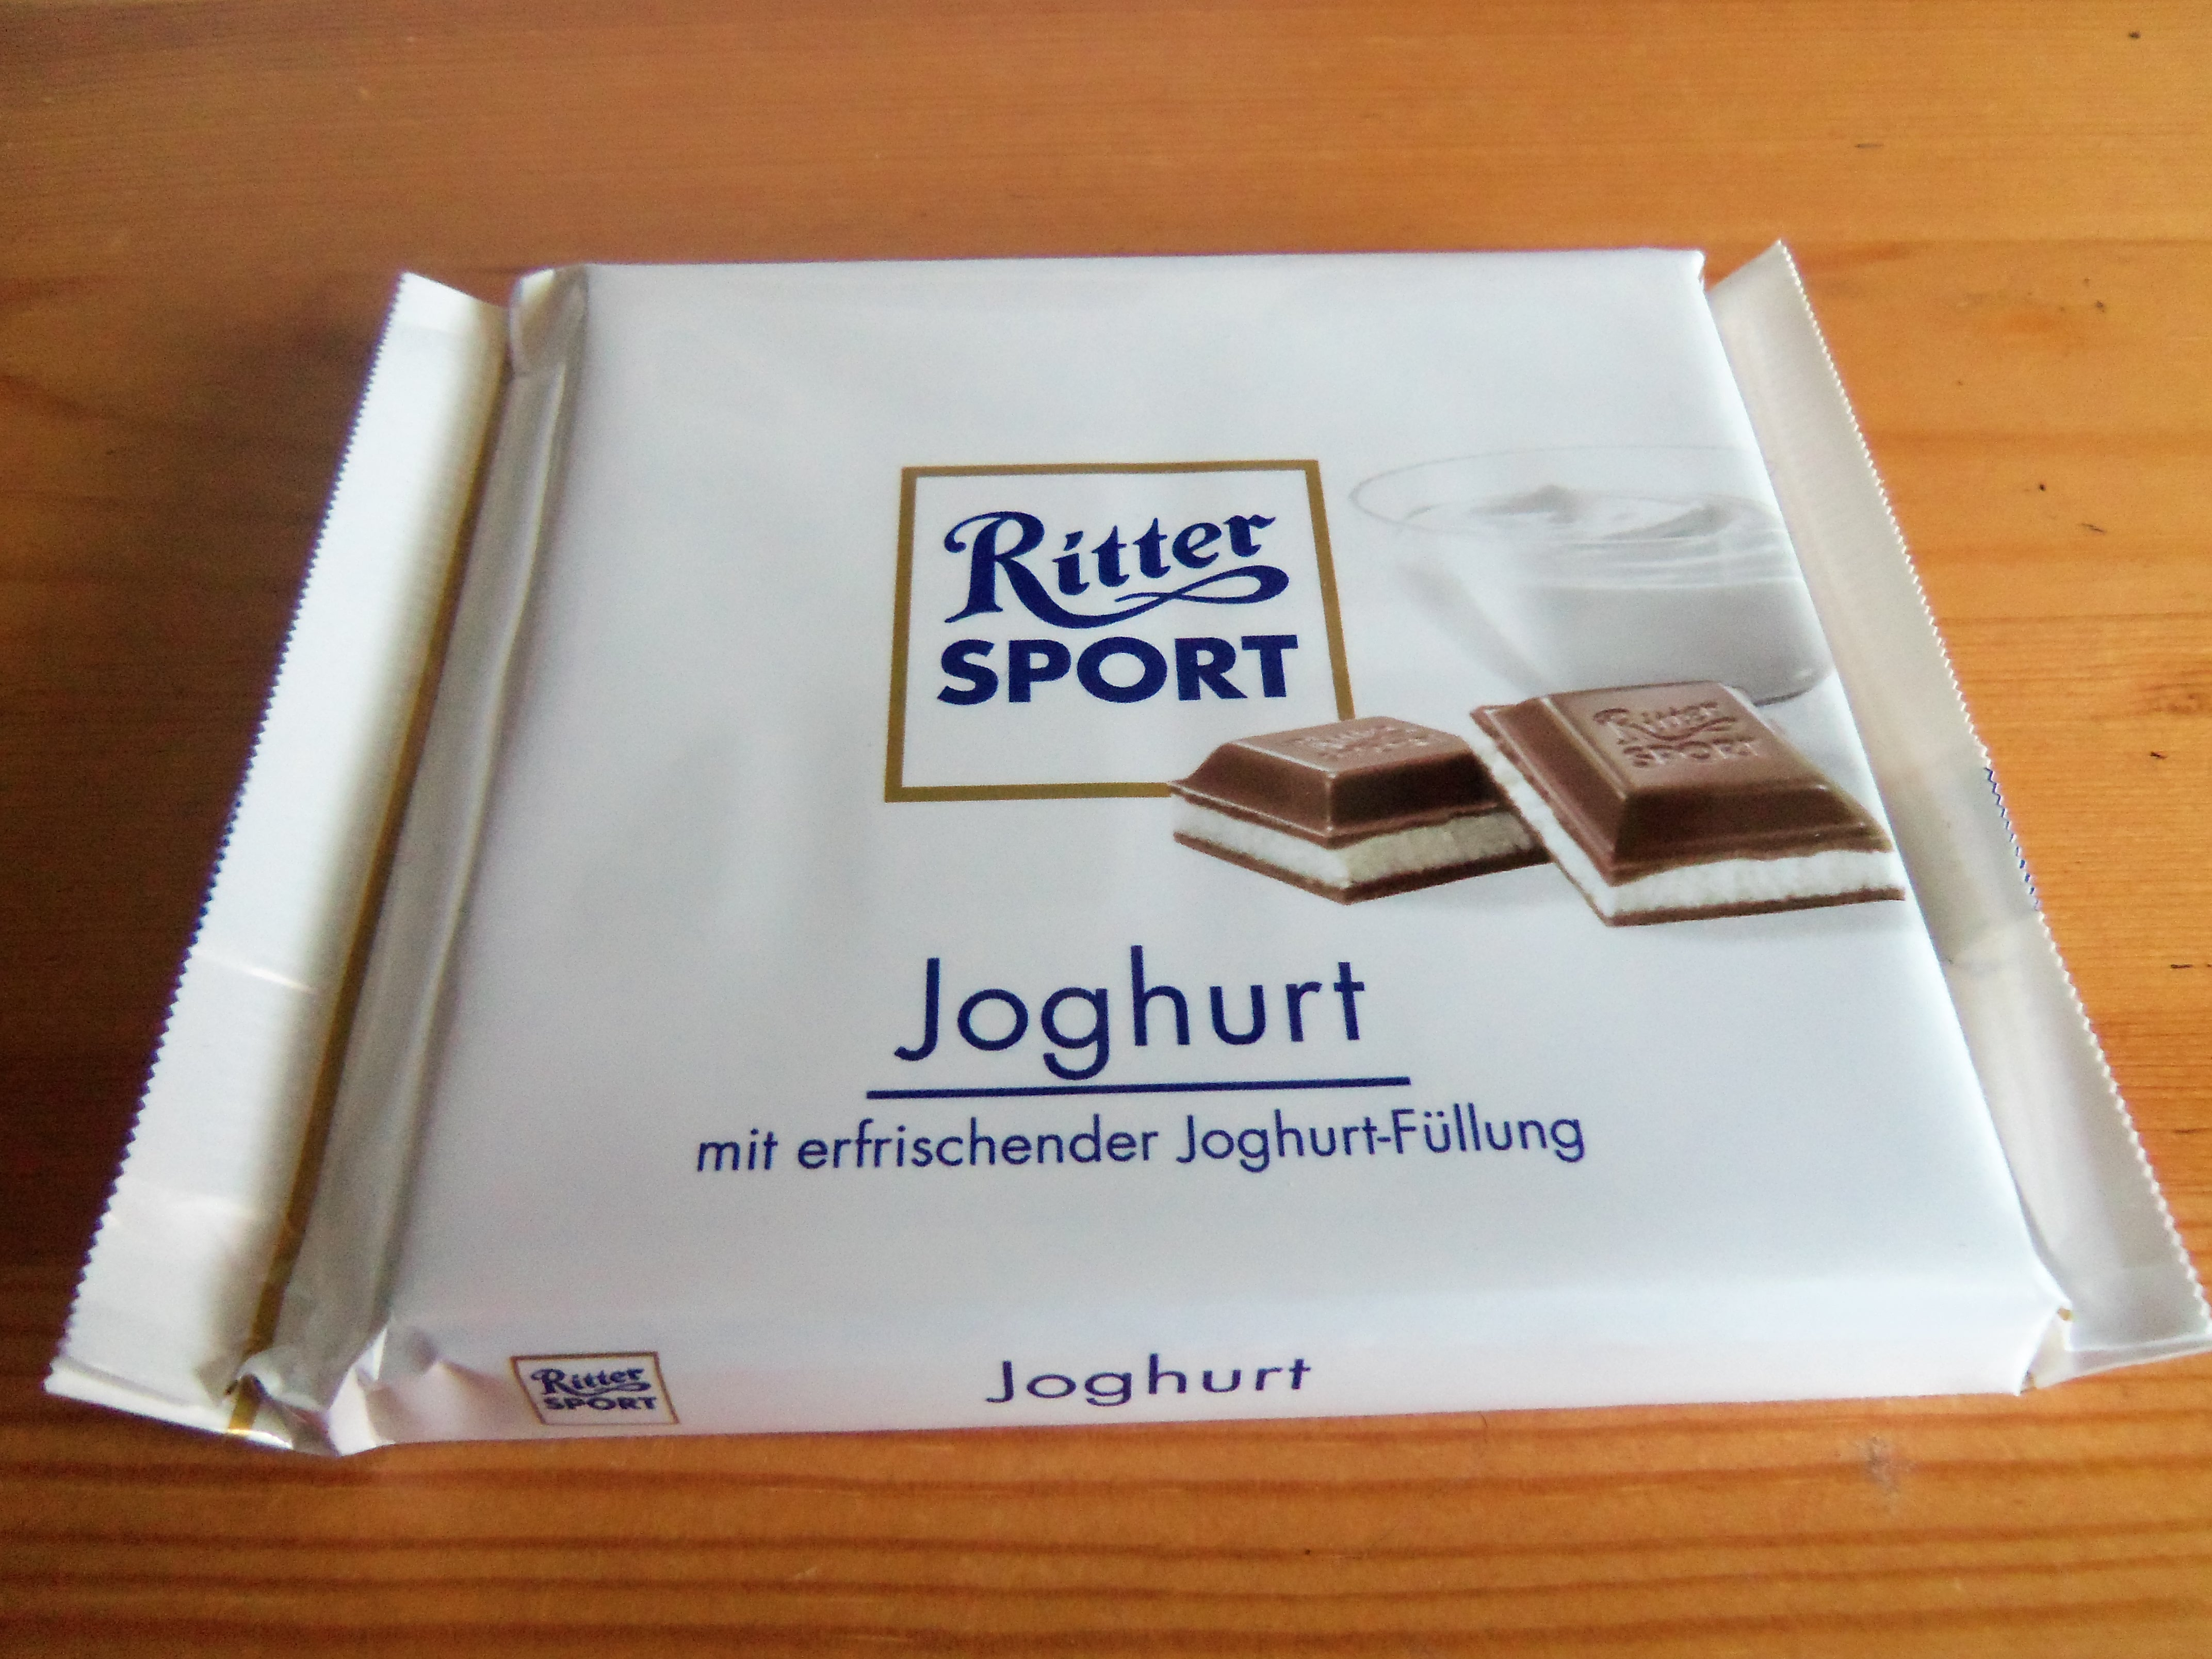 Ritter Sport Yogurt | The Snack Review